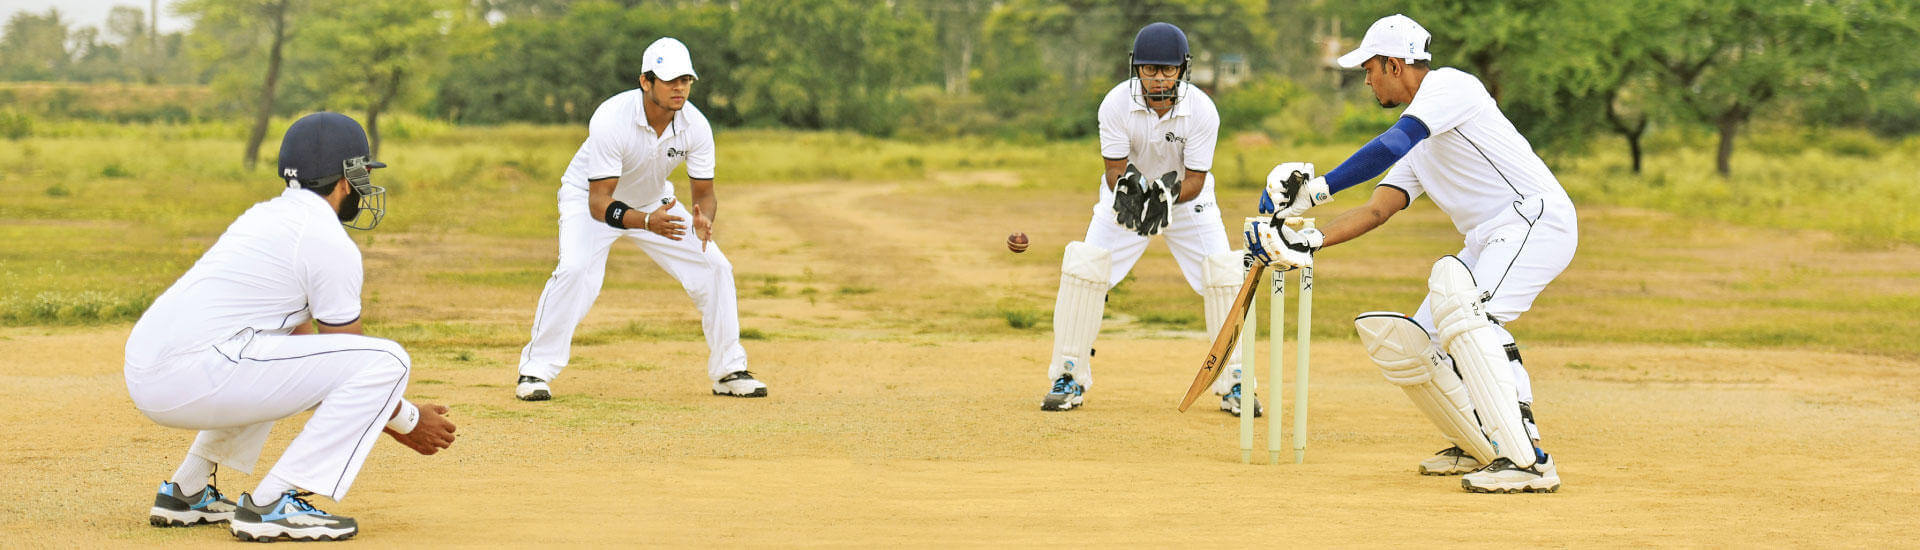 Wicket Keeping In Cricket - Get your Basics Right